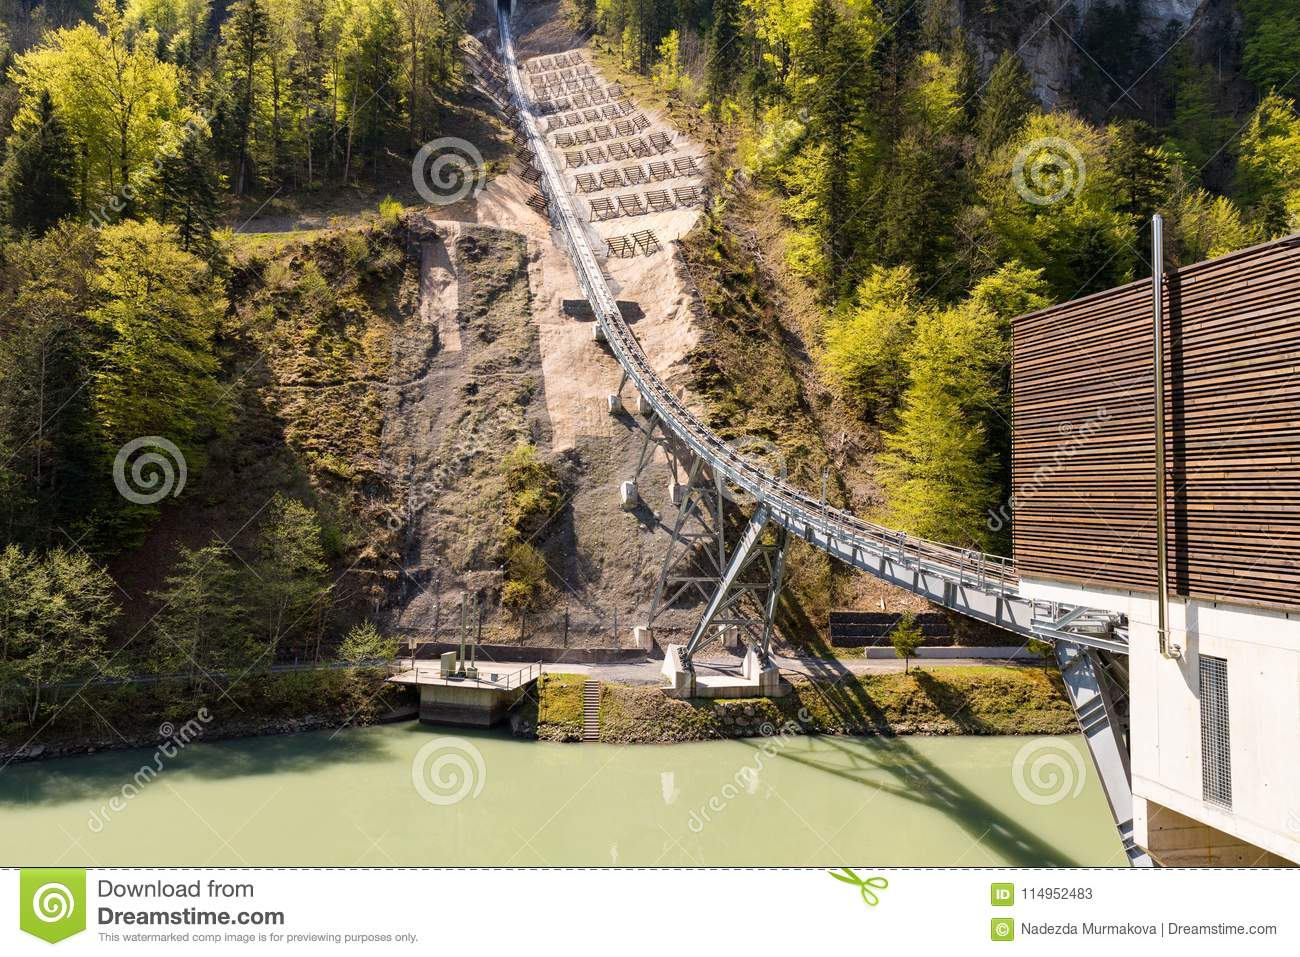 Funicular Railway Connecting The Village Of Stoos And The Town Of Schwyz In Switzerland Lower Station Funicular Railway Stock Image Image Of Peak Alpen 114952483